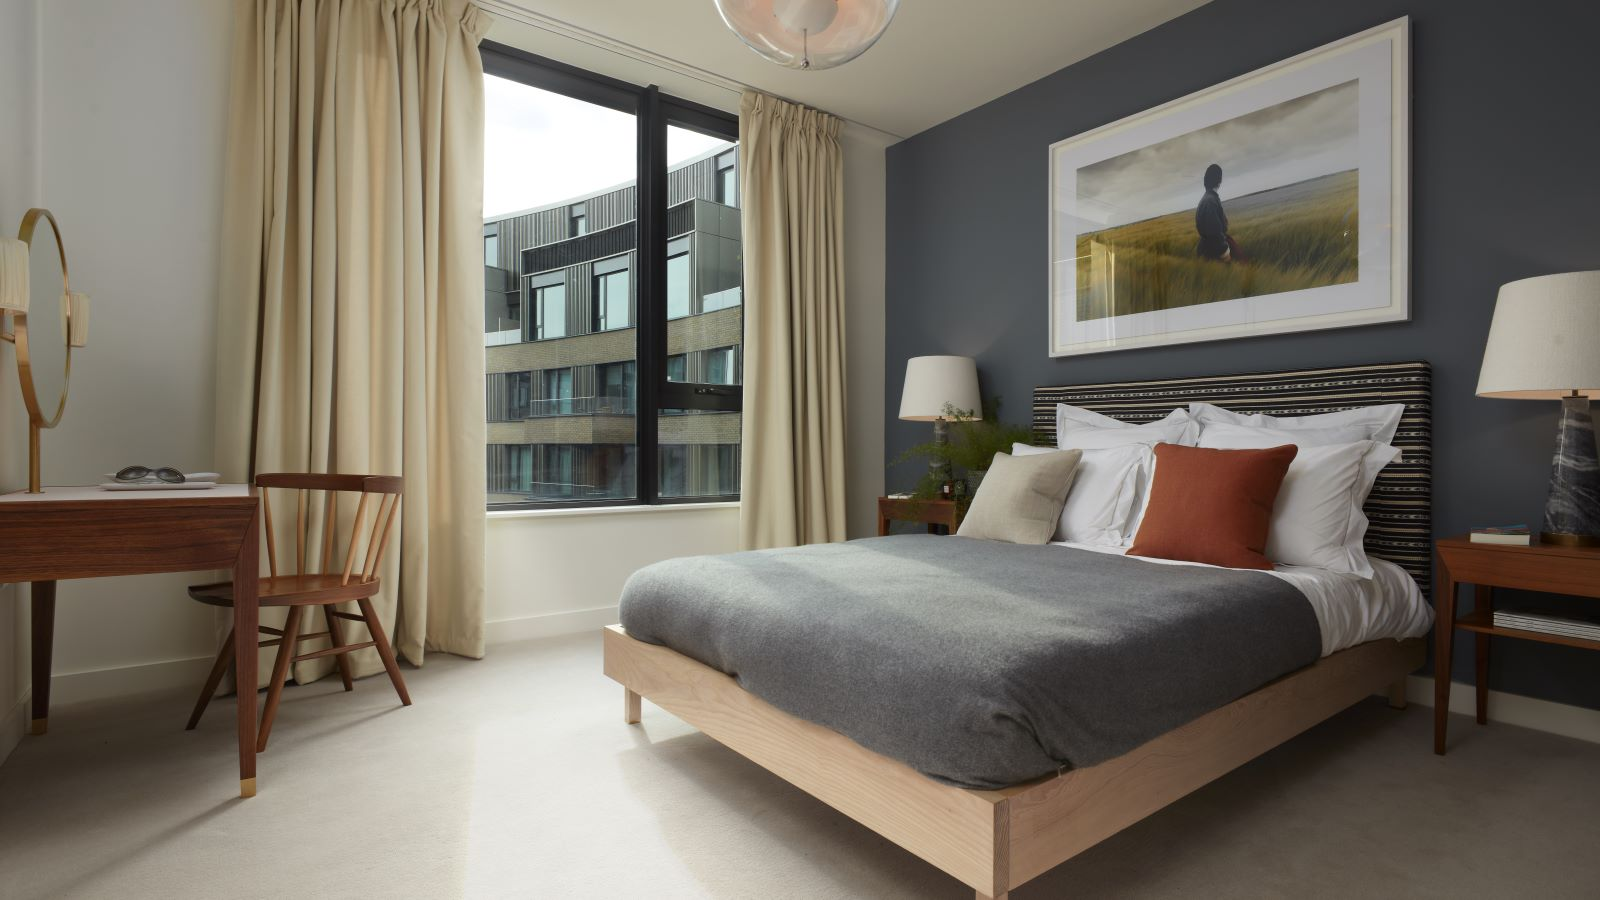 Television Centre Accommodation Modern Bedroom - Mace Group